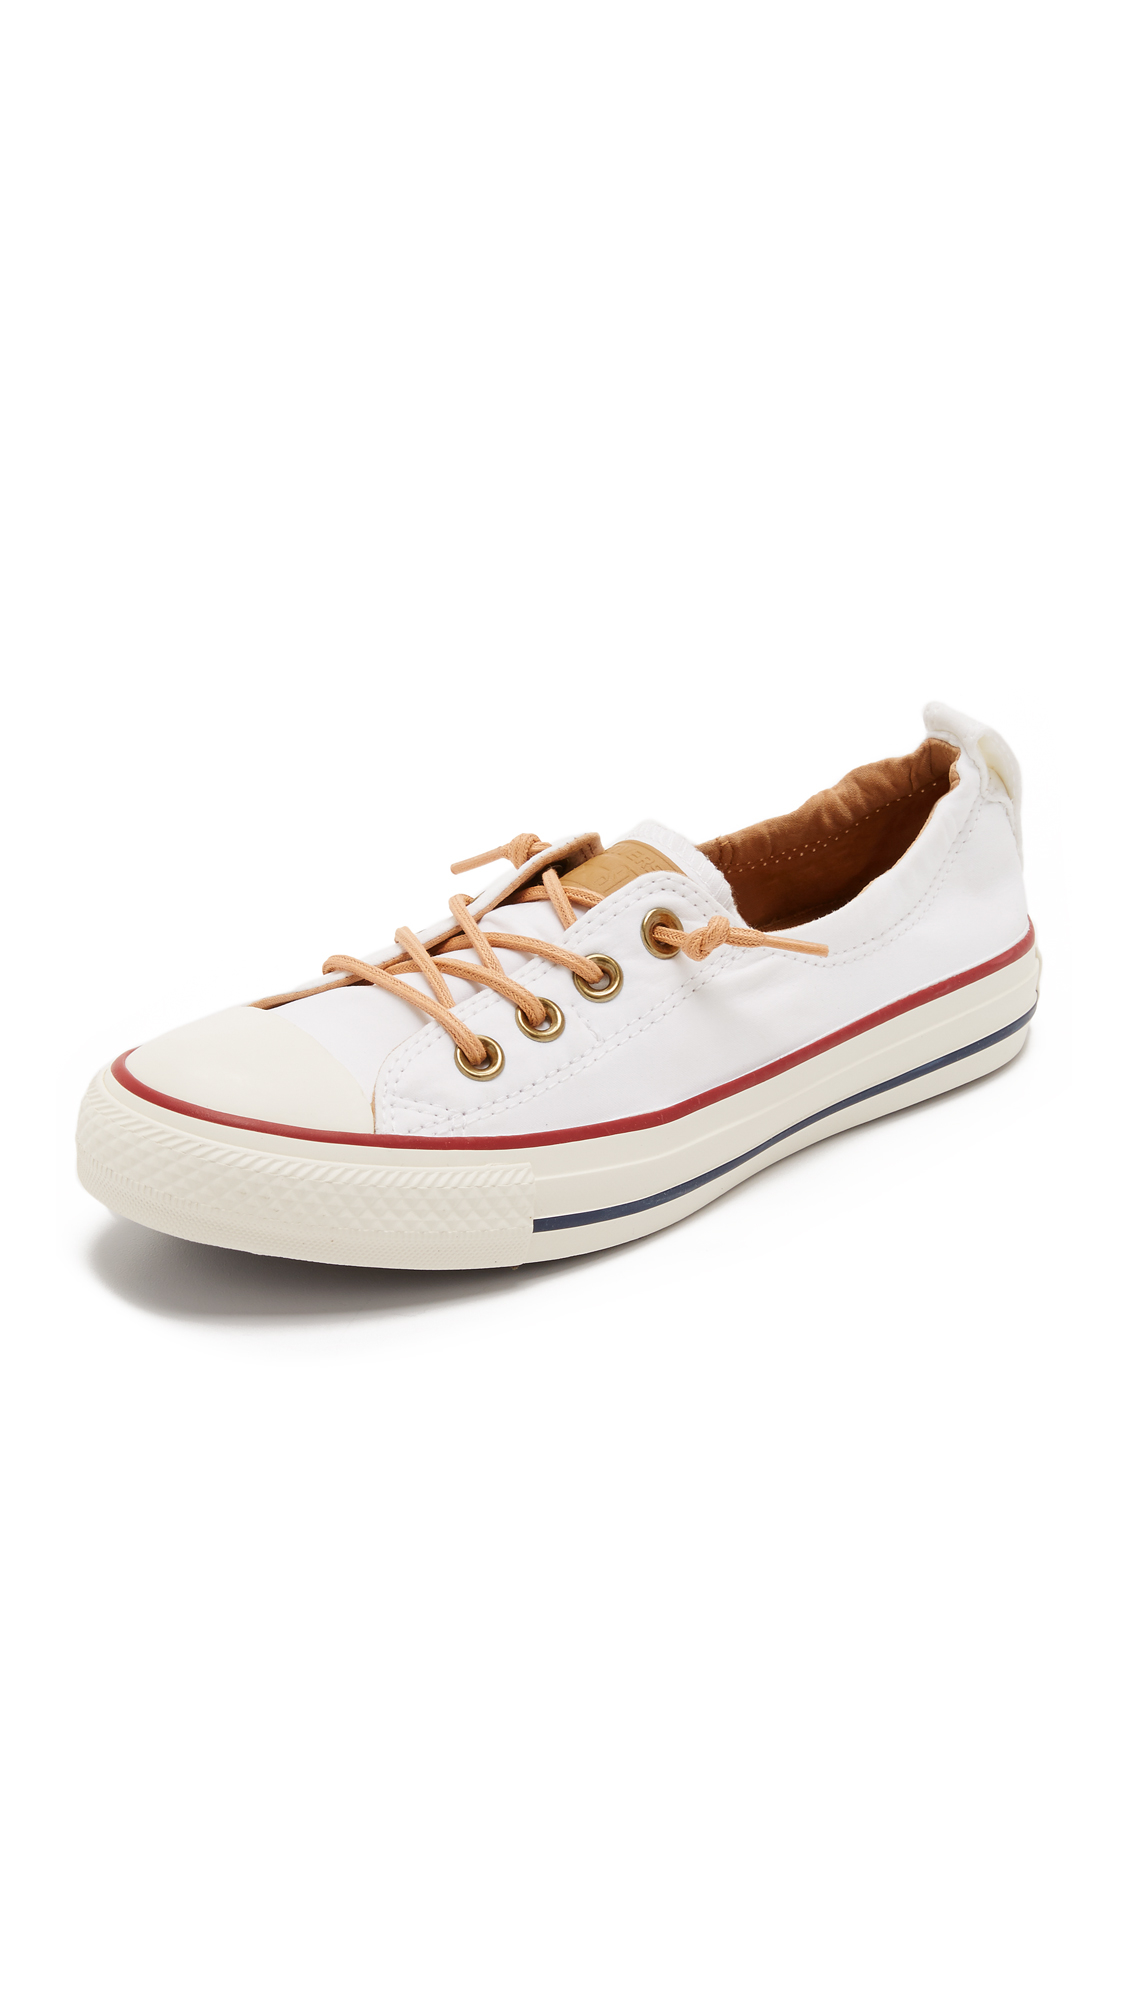 e8bf743233a4 Lyst - Converse Chuck Taylor All Star Shoreline Sneakers - White ...